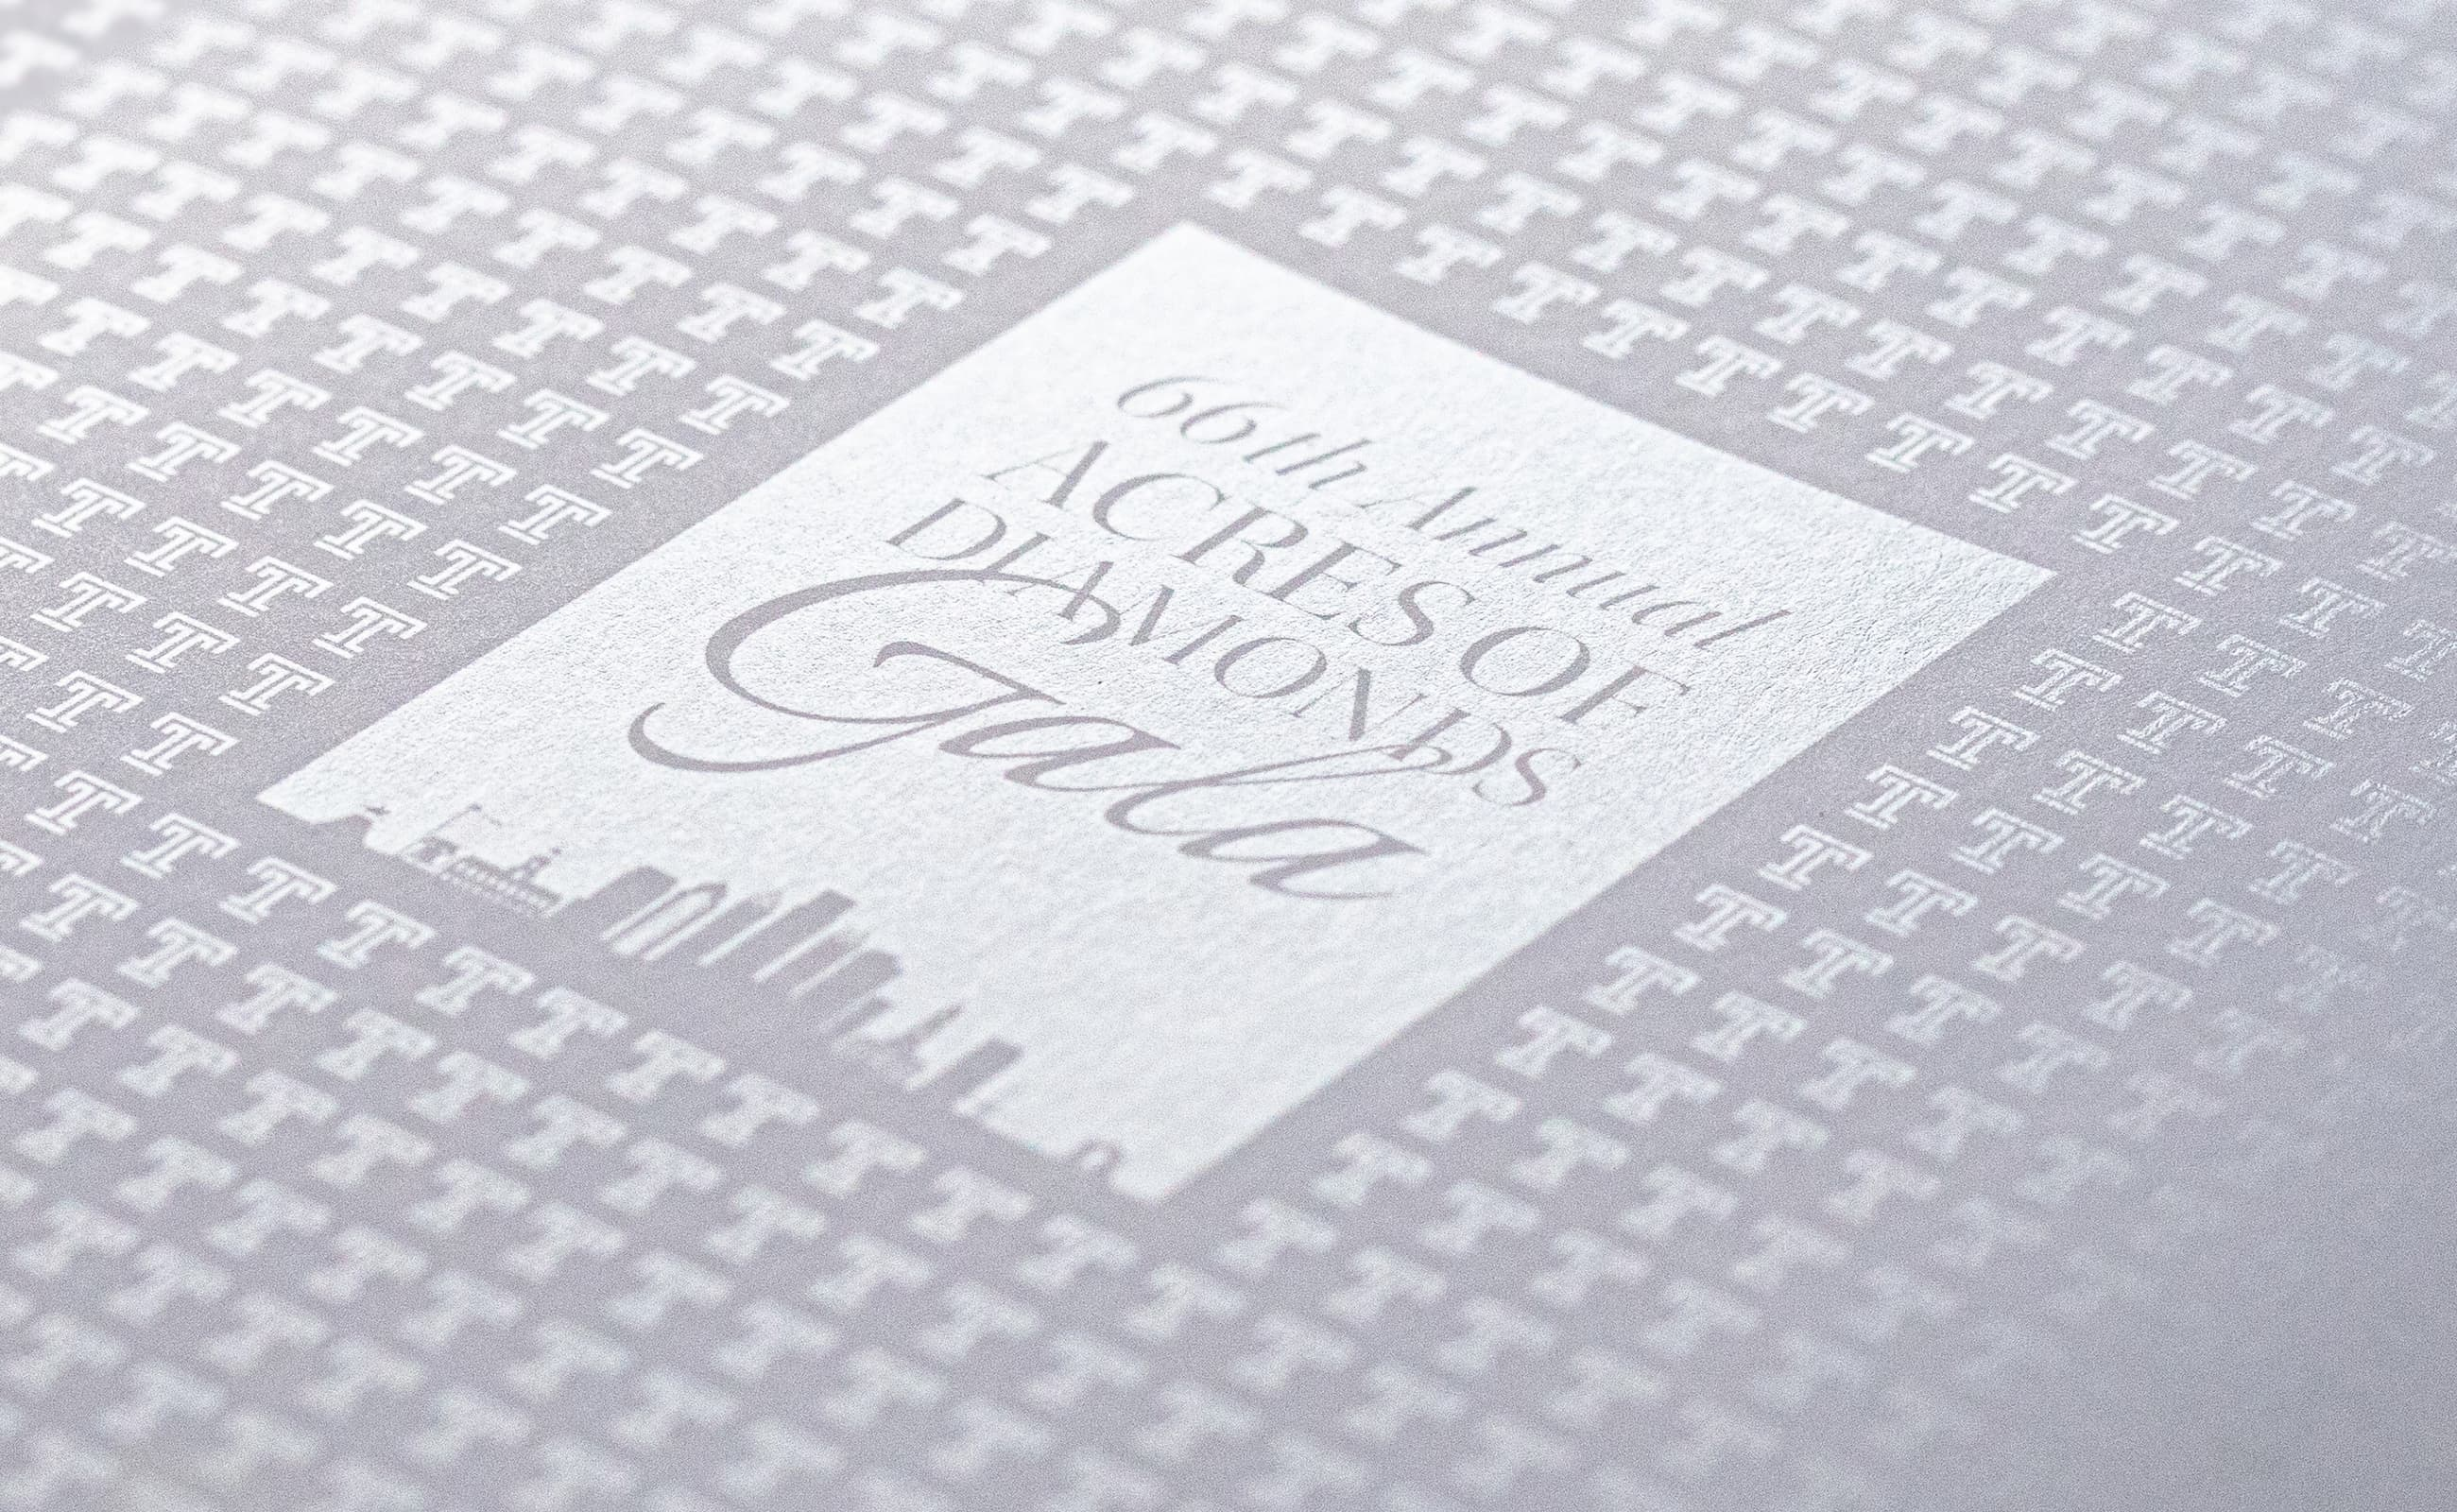 King Design Temple University 2019 Gala Save The Date Specialty Printing